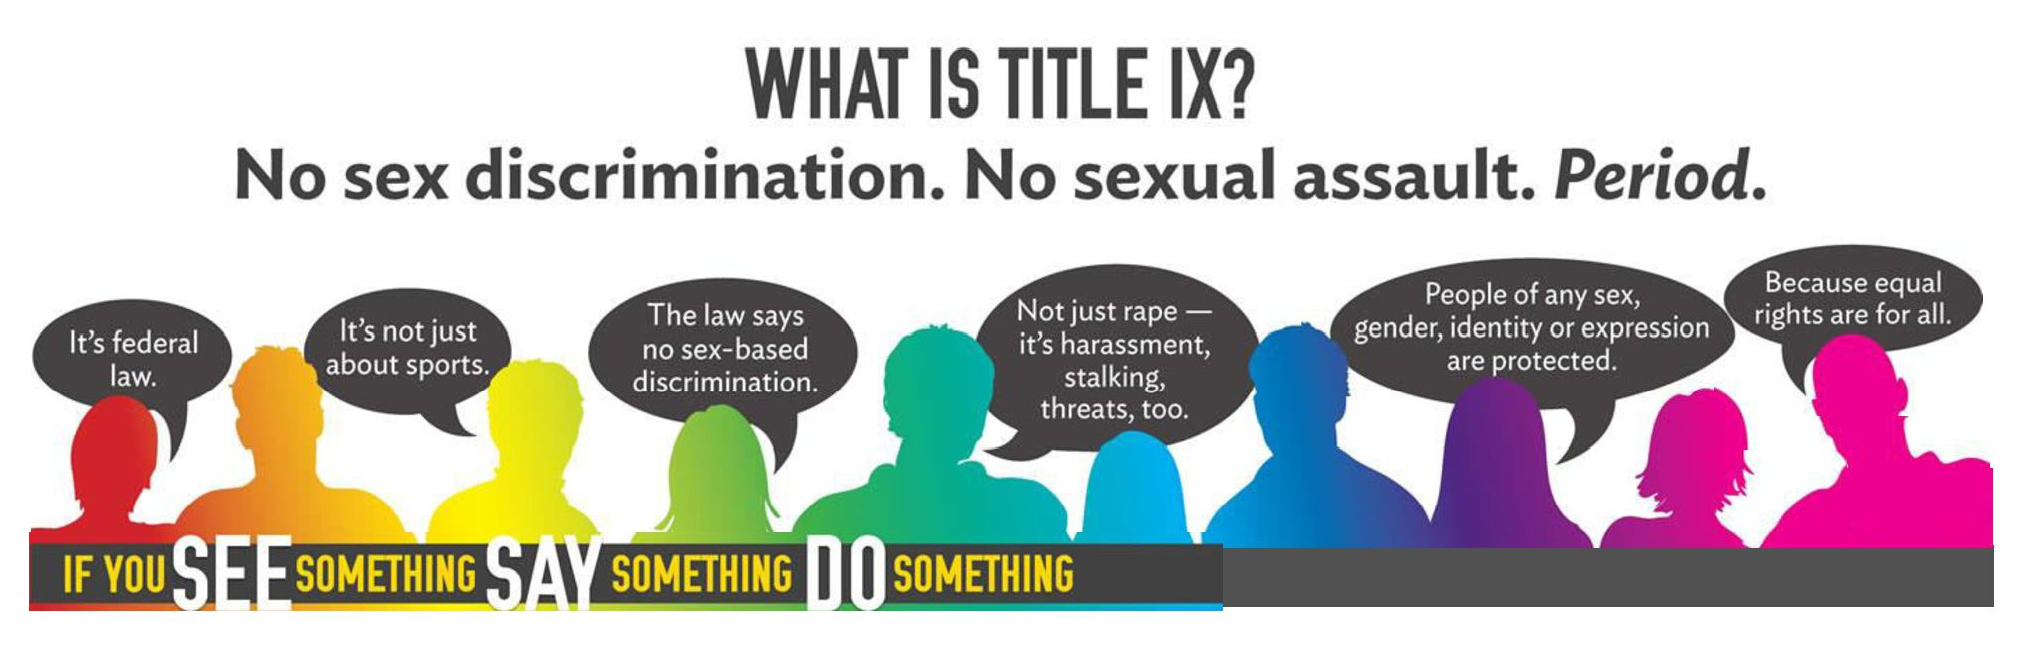 What is Title IX?